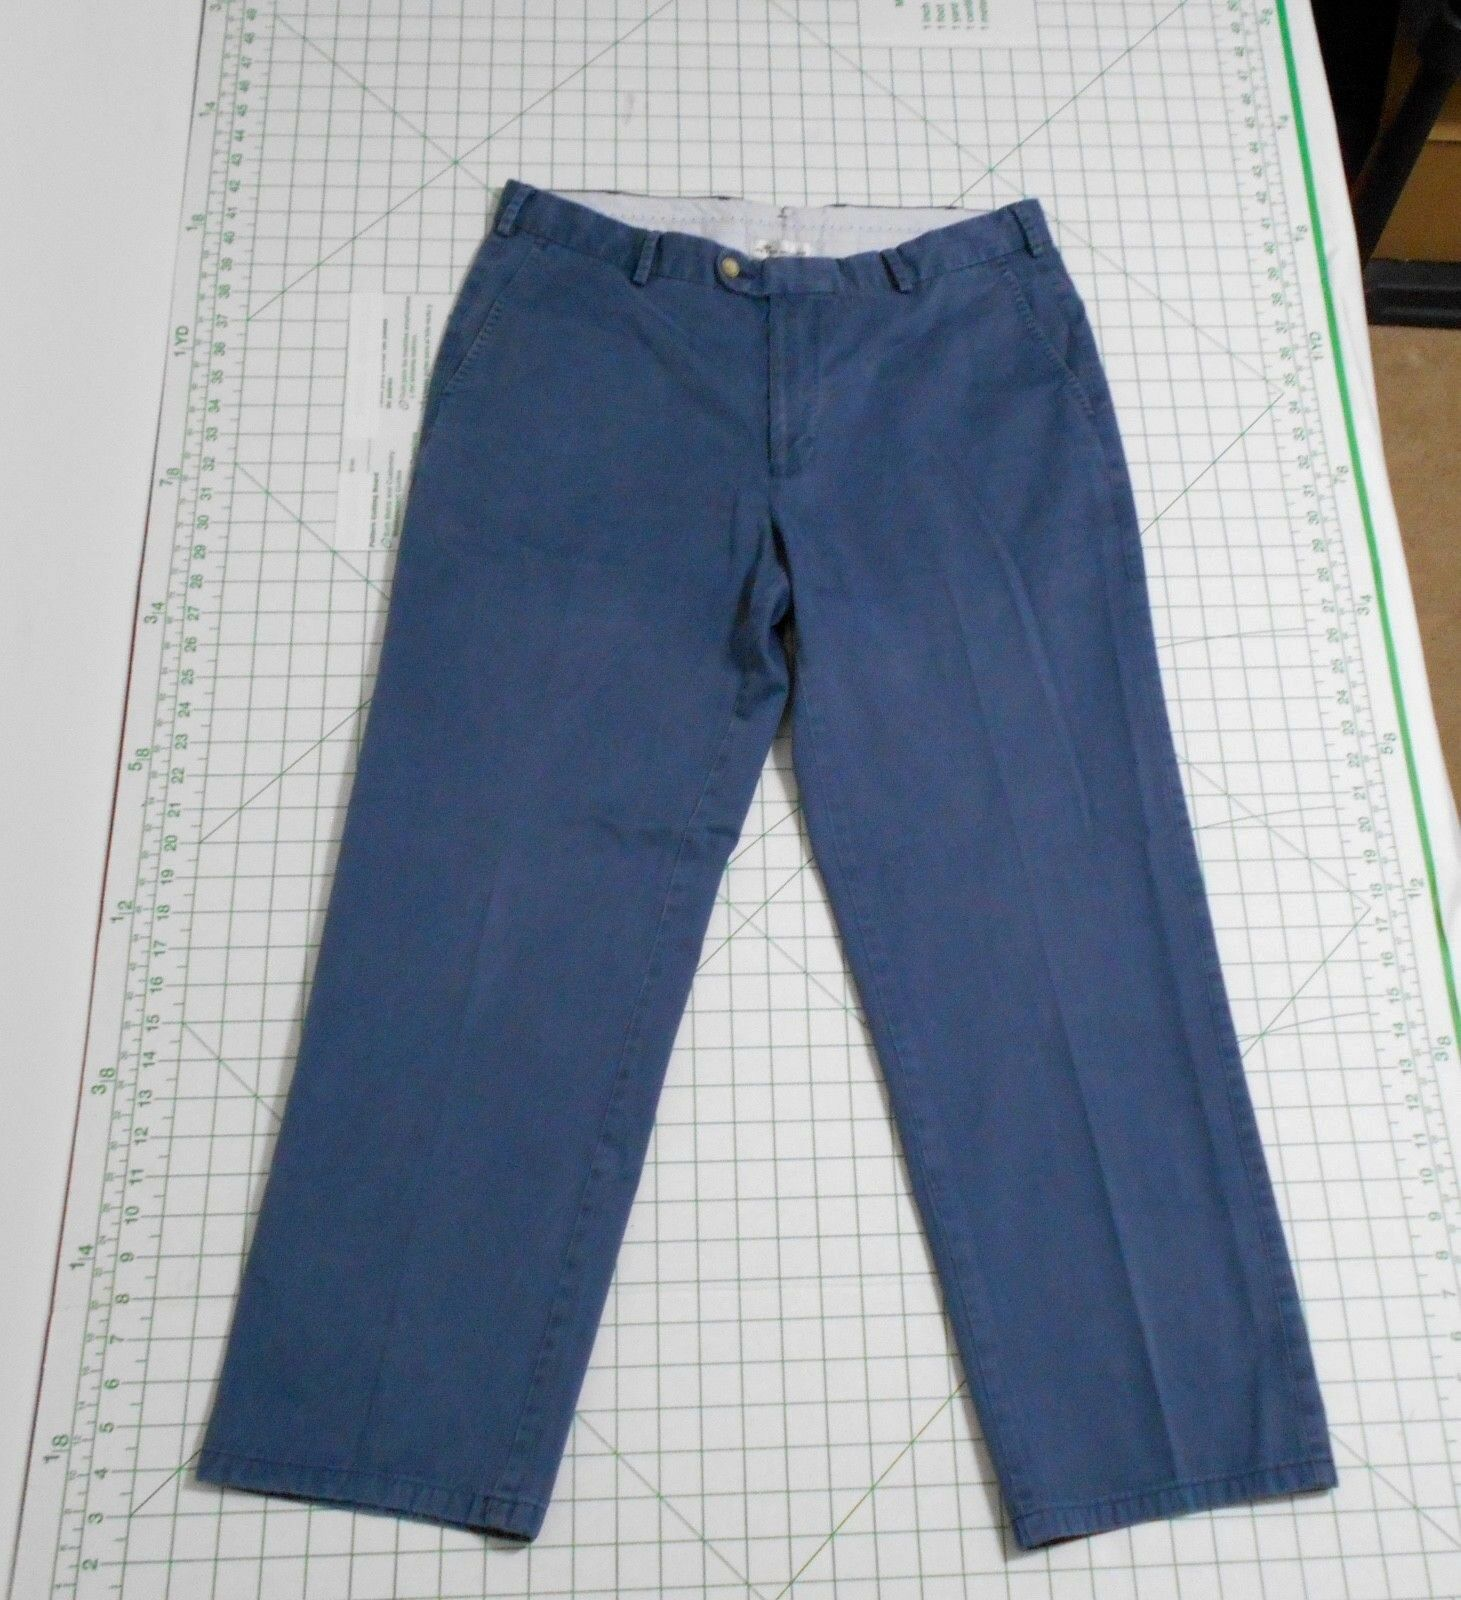 PETER MILLAR Casual Pants - Men's Size 35 - bluee Flat Front